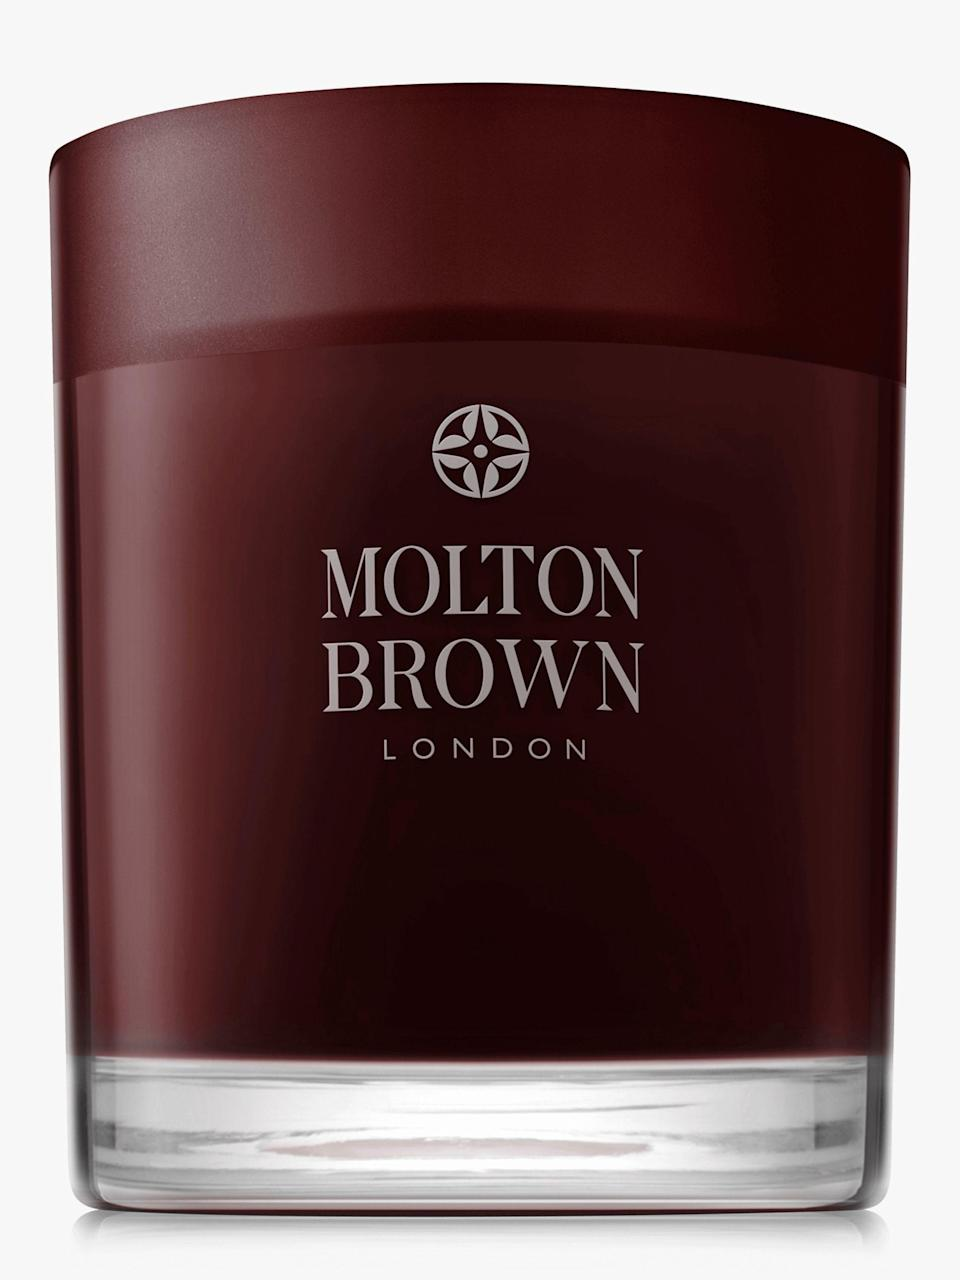 "<p><strong>Molton Brown</strong></p><p>olivela.com</p><p><strong>$50.00</strong></p><p><a href=""https://go.redirectingat.com?id=74968X1596630&url=https%3A%2F%2Fwww.olivela.com%2Fproducts%2Fmoltonbrown-blackpeppercornsinglewickcandle-20852&sref=https%3A%2F%2Fwww.harpersbazaar.com%2Fbeauty%2Fg34078375%2Fbest-winter-candles%2F"" rel=""nofollow noopener"" target=""_blank"" data-ylk=""slk:Shop Now"" class=""link rapid-noclick-resp"">Shop Now</a></p><p><strong>Smells like: </strong>the rich, lush side of peppercorns, minus the sneezing. Light this candle up if you love a relaxing, yet masculine scent—Molton Brown knows how to do both well. </p>"